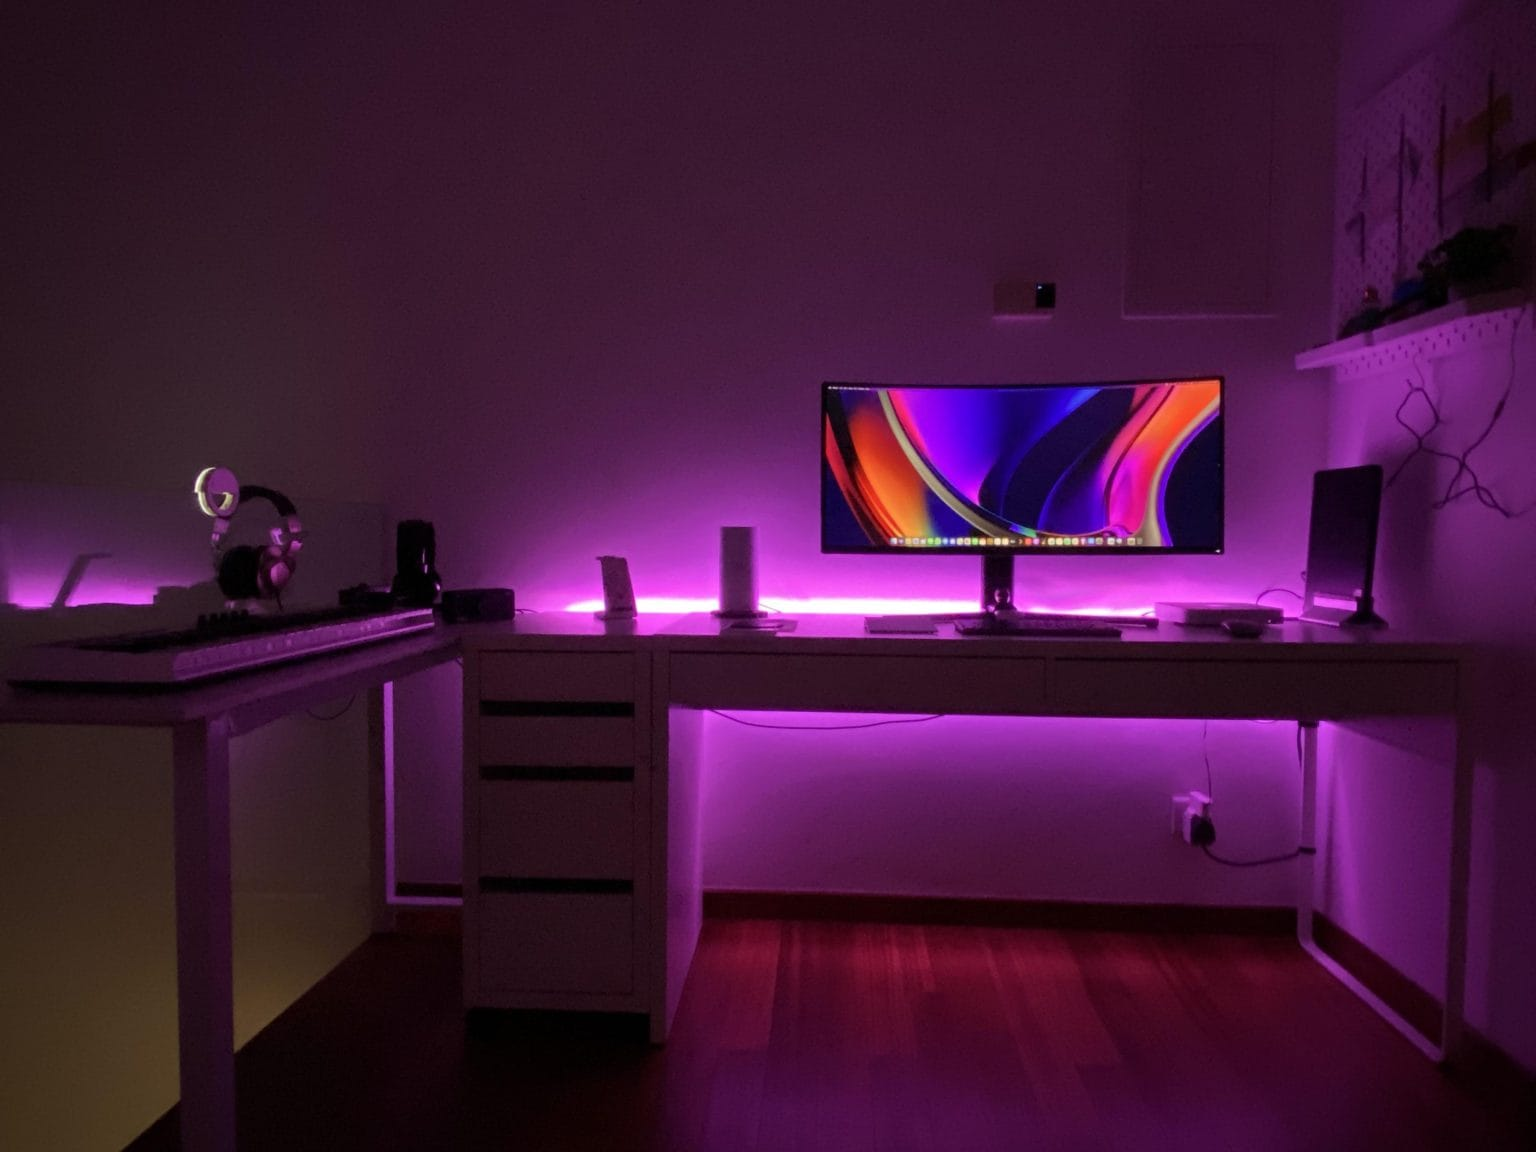 It's amazing what some light strips and display wallpaper can do for ambiance.